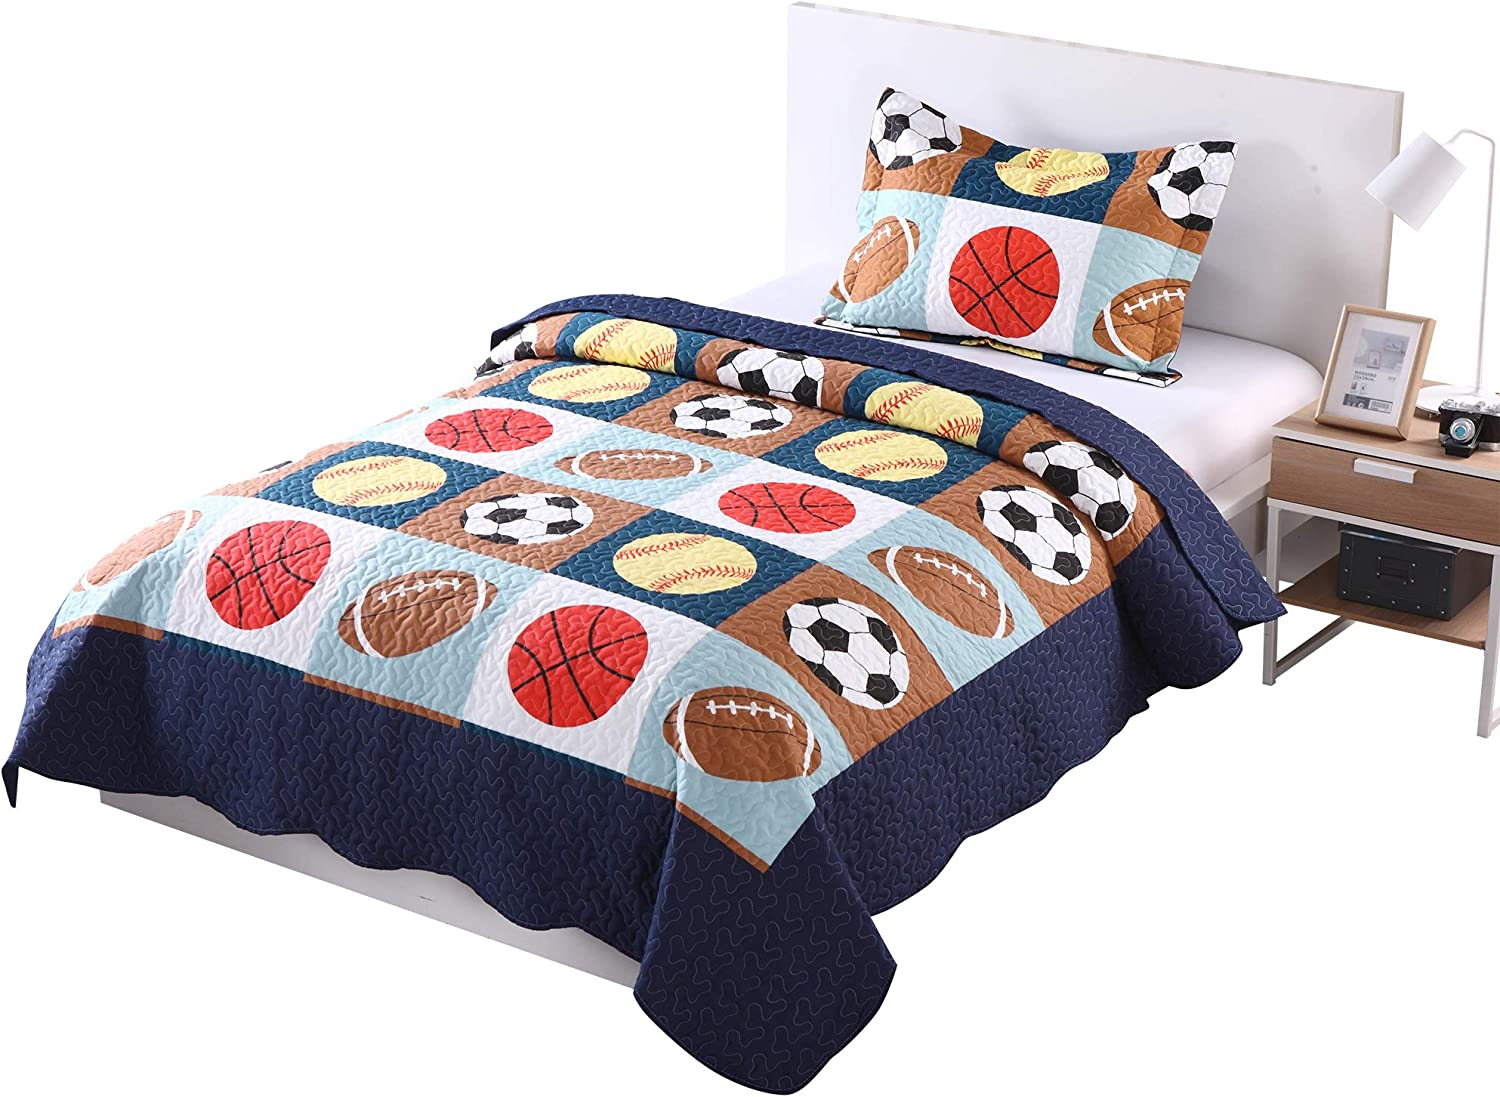 Marcielo 2 Piece Kids Bedspread Quilts Set Throw Blanket For Teens Boys Bed Printed Bedding Coverlet Twin Size Blue Basketball Football Sports American Football Twin Kitchen Dining